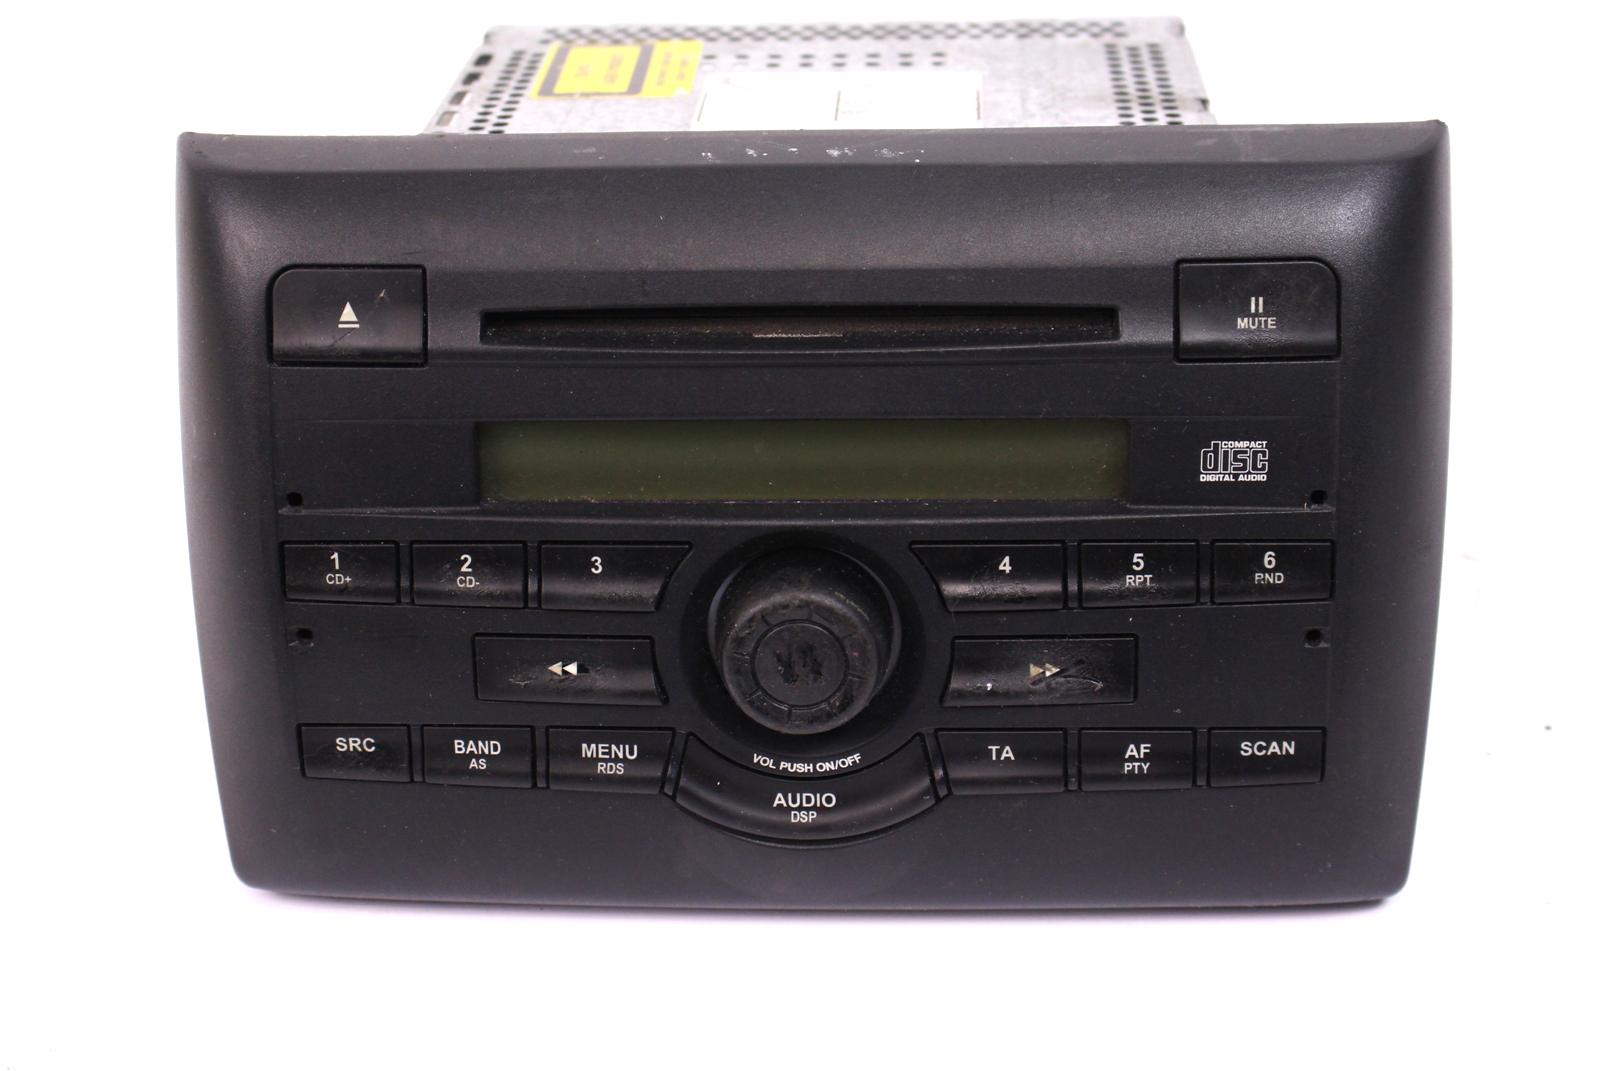 fiat stilo cd autoradio player inkl code radio schwarz 2fcf 18c838 be 735296997 ebay. Black Bedroom Furniture Sets. Home Design Ideas